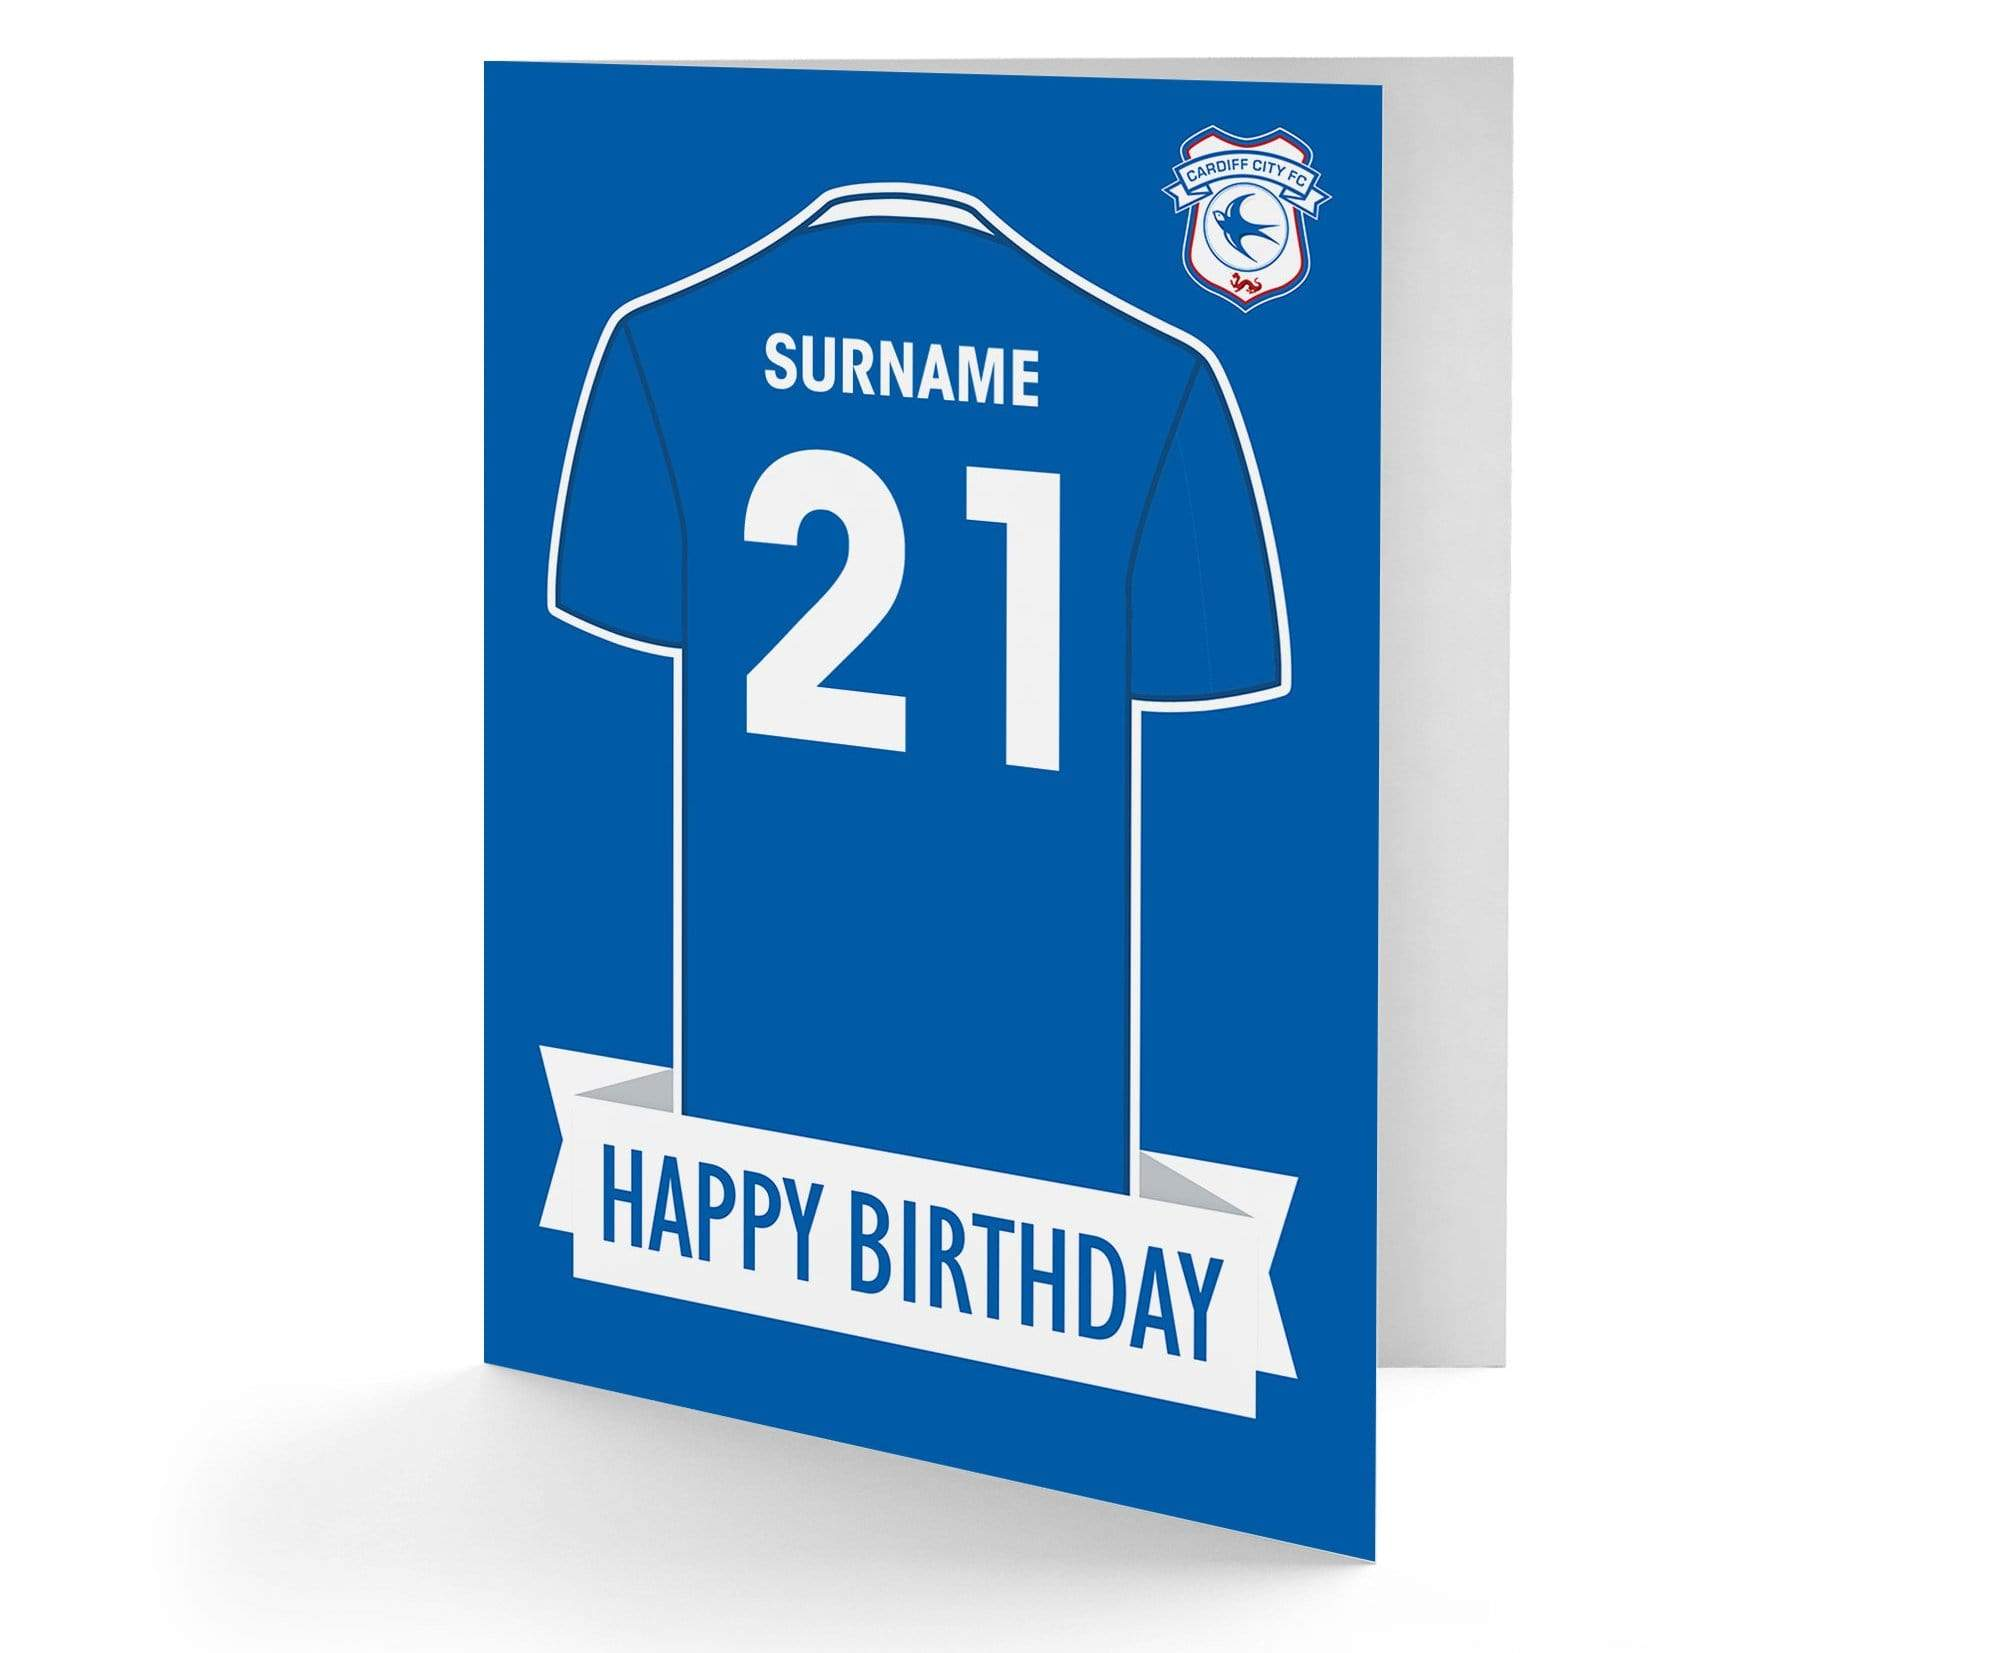 Personalised Cardiff Birthday Card, Gift Giving by Glamorous Gifts UK